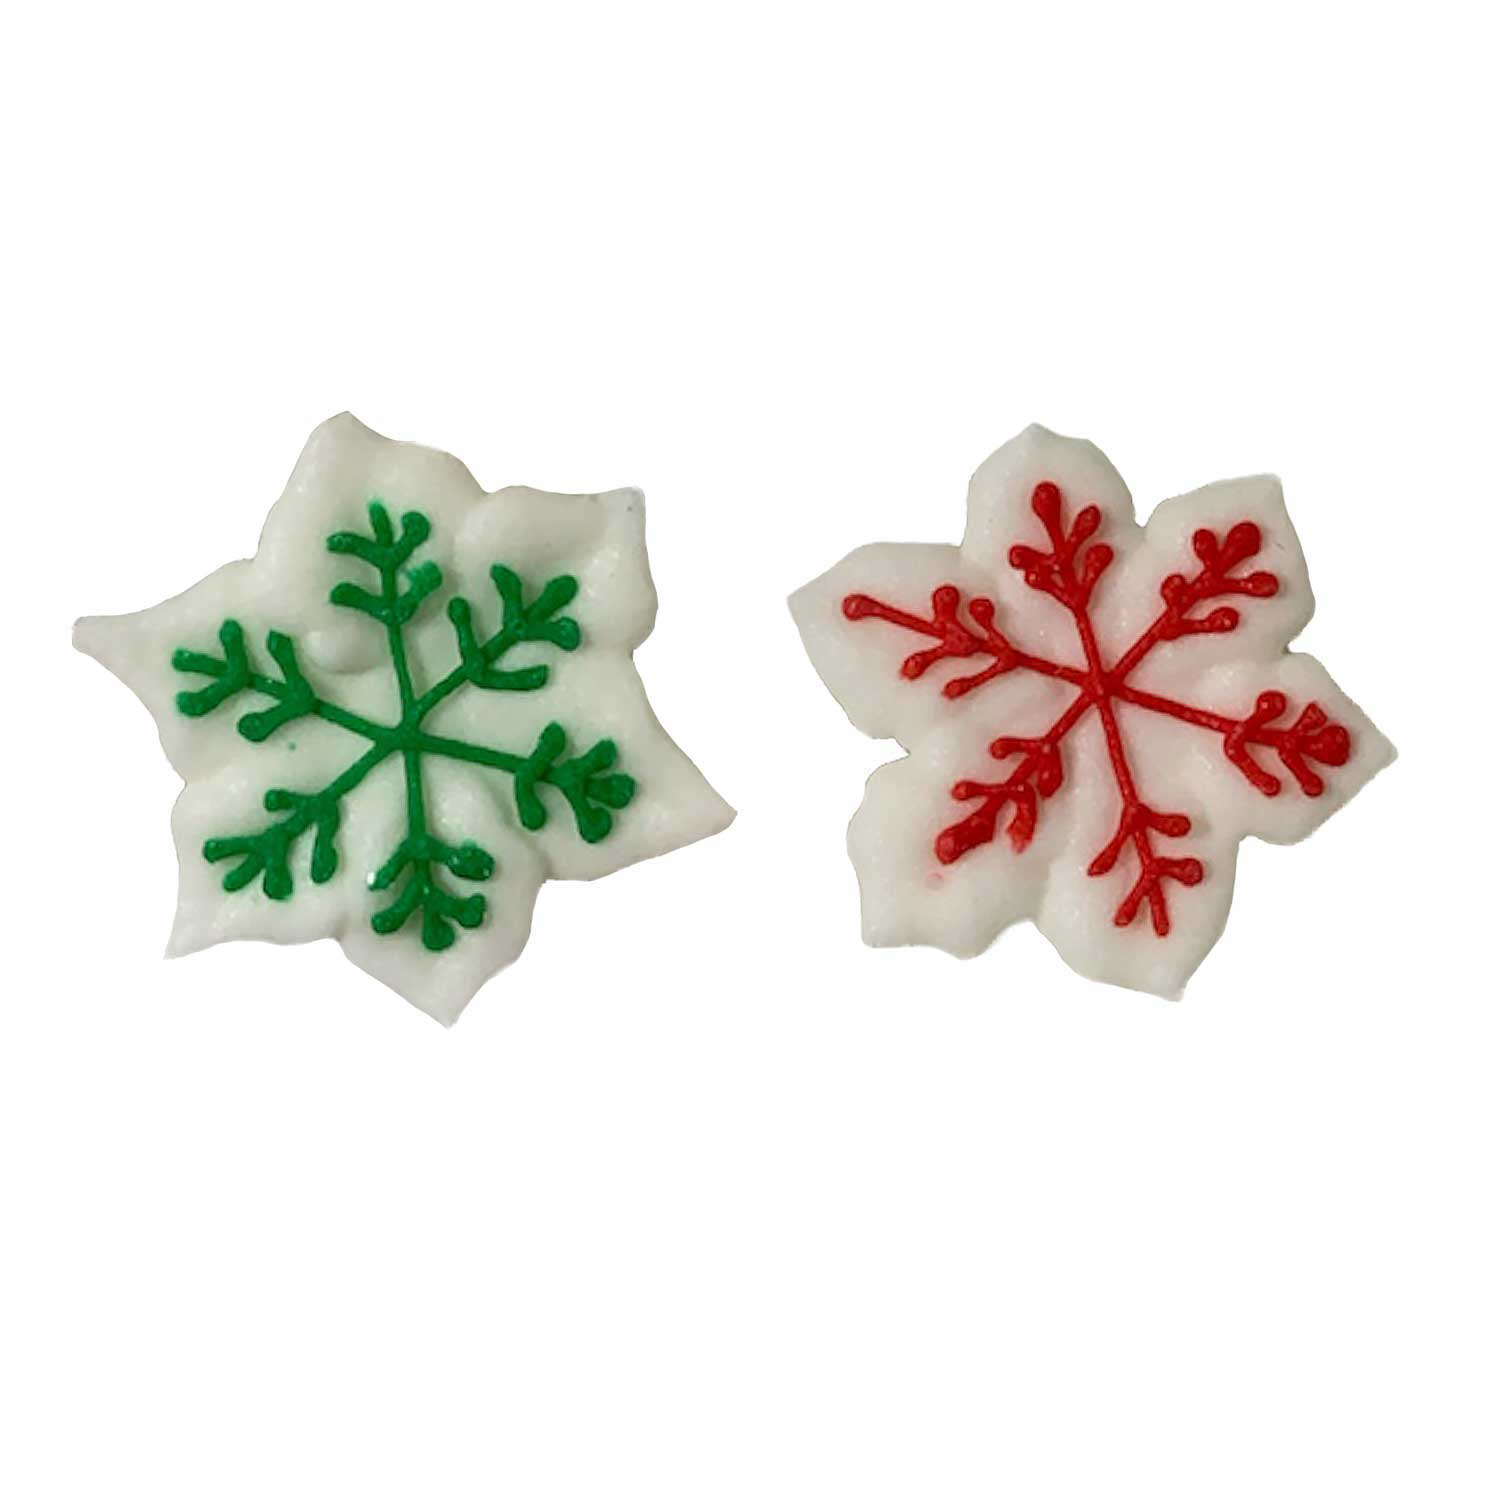 Icing Layons - Snowflakes with Red and Green Trim